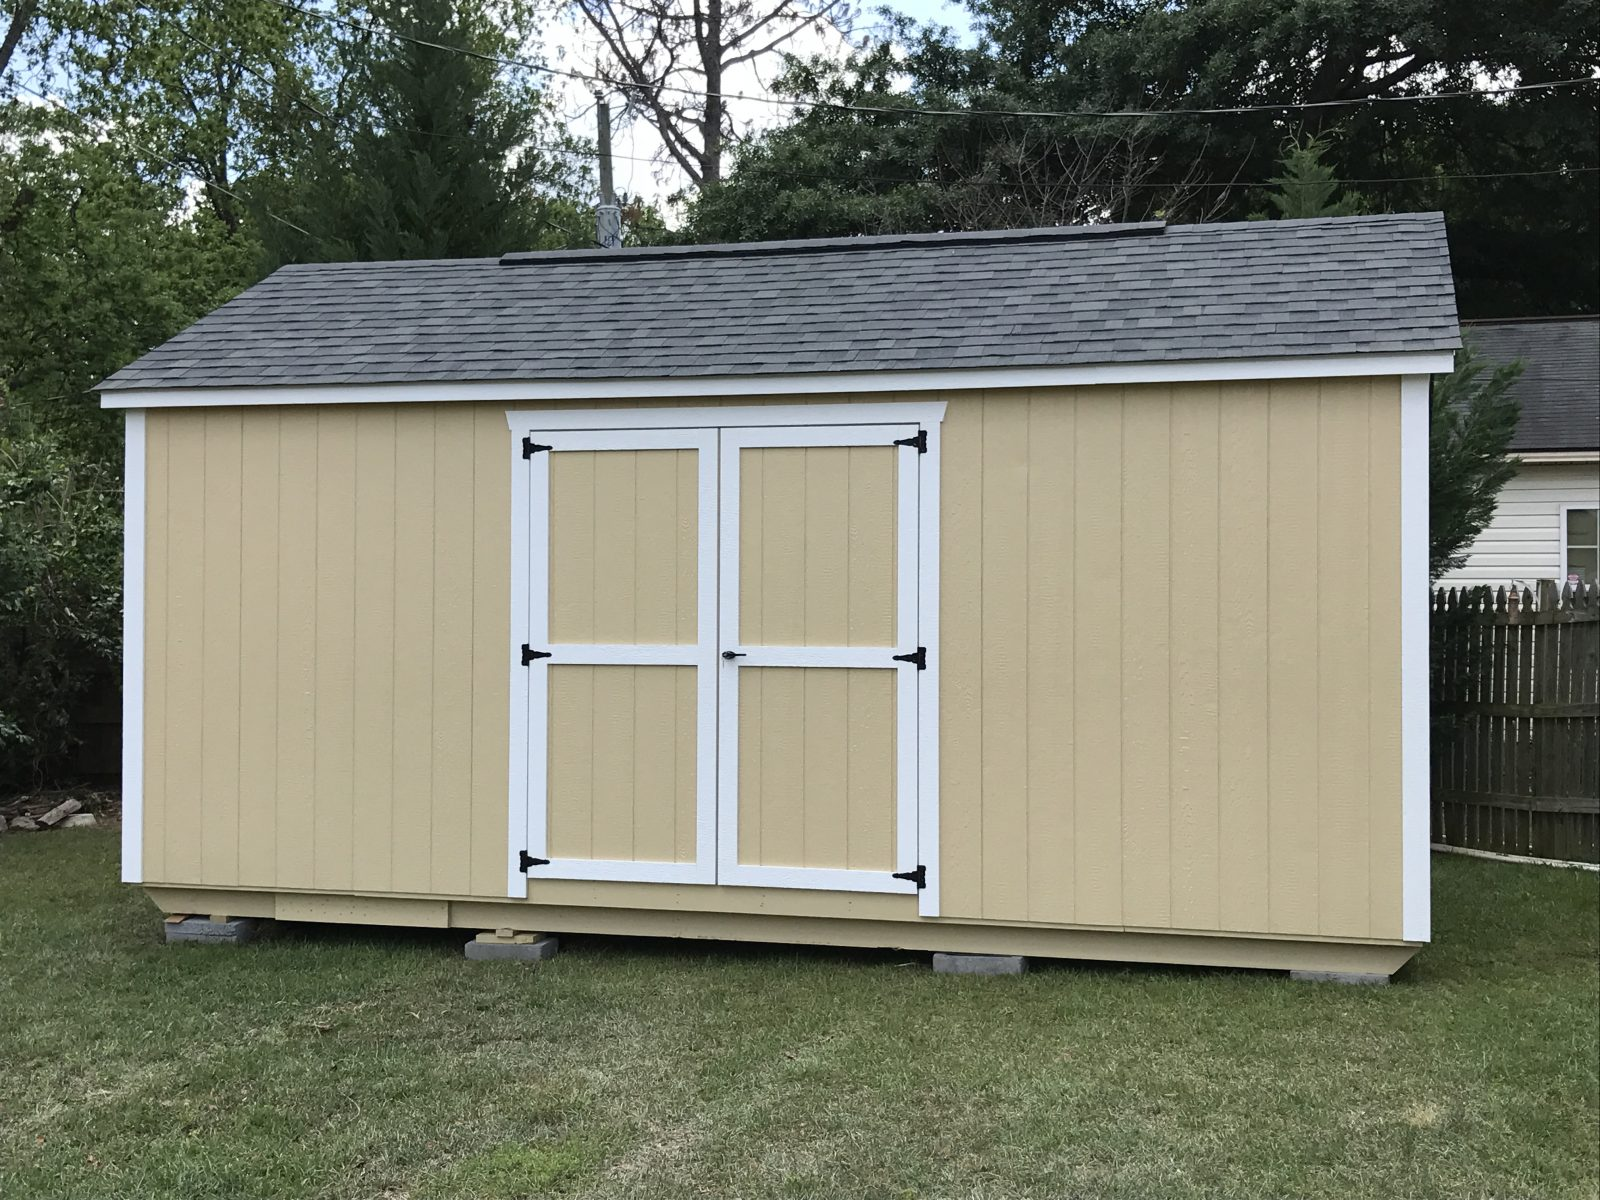 augusta-ga-portable-wood-buildings-garden-max-008-1600x1600 Designing Garden Shed on garden cabinets, garden fireplaces, garden garages, garden playhouse, garden buildings, garden outbuildings, garden trellis, garden outhouses, garden chalet, garden hut,